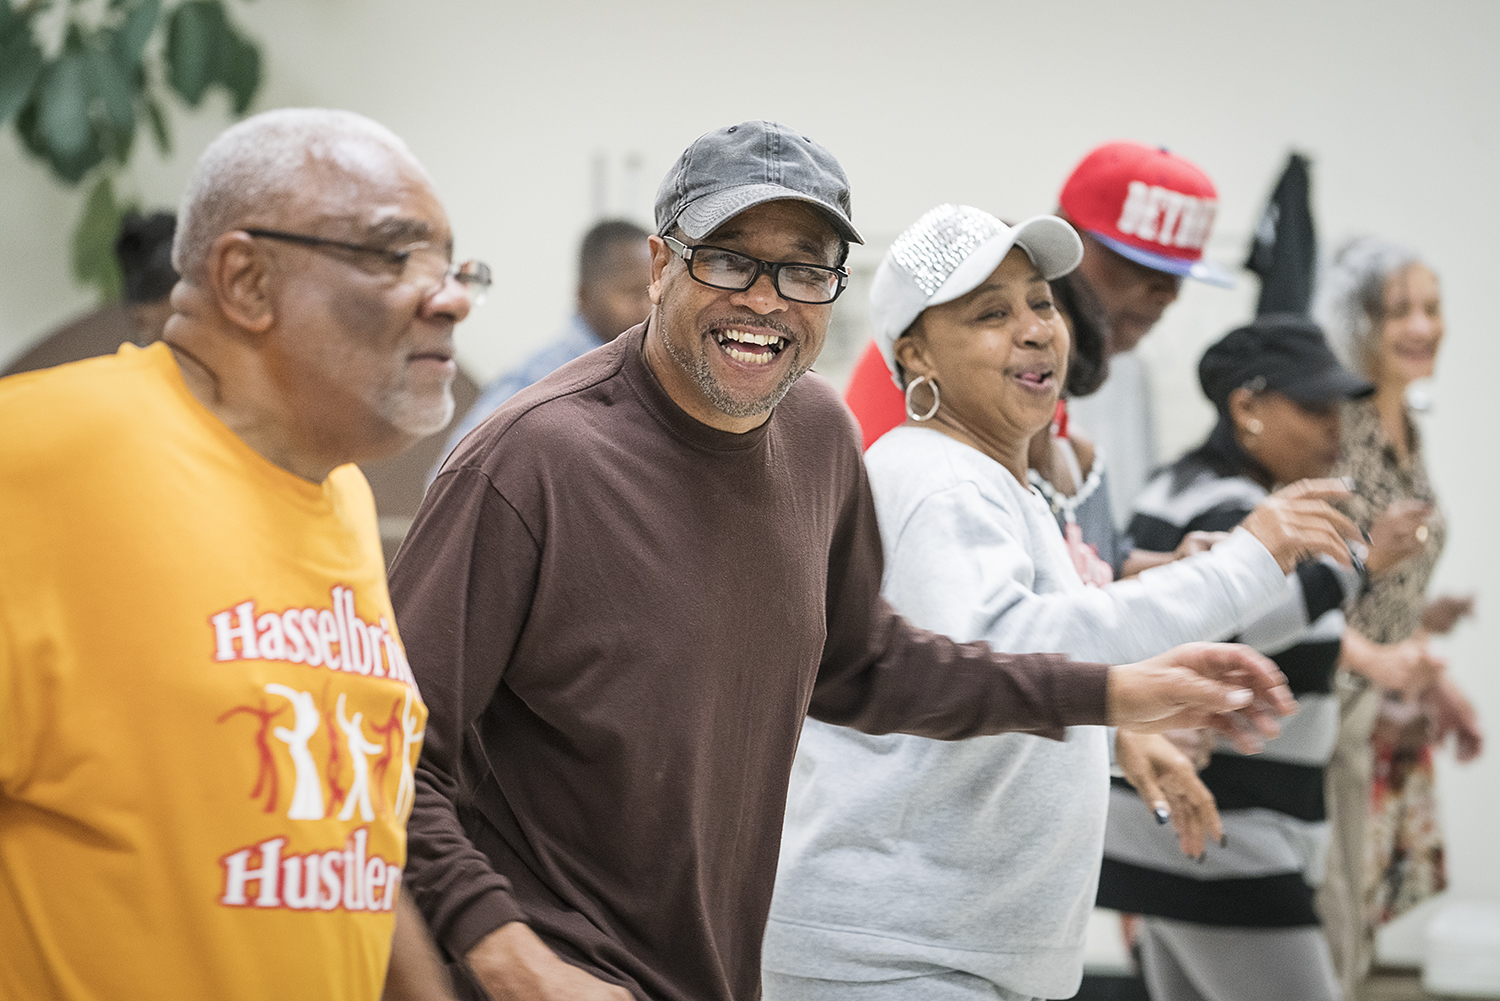 Flint, MI - Tuesday, October 24, 2017: DJ Gardell Haralson, 64, center left, laughs as he dances with the Hasselbring Hustlers at the Hasselbring Senior Community Center. Haralson helped grow the Hustlers from a meager 15 participants to approximately 150 over the past four years, simply by word of mouth.